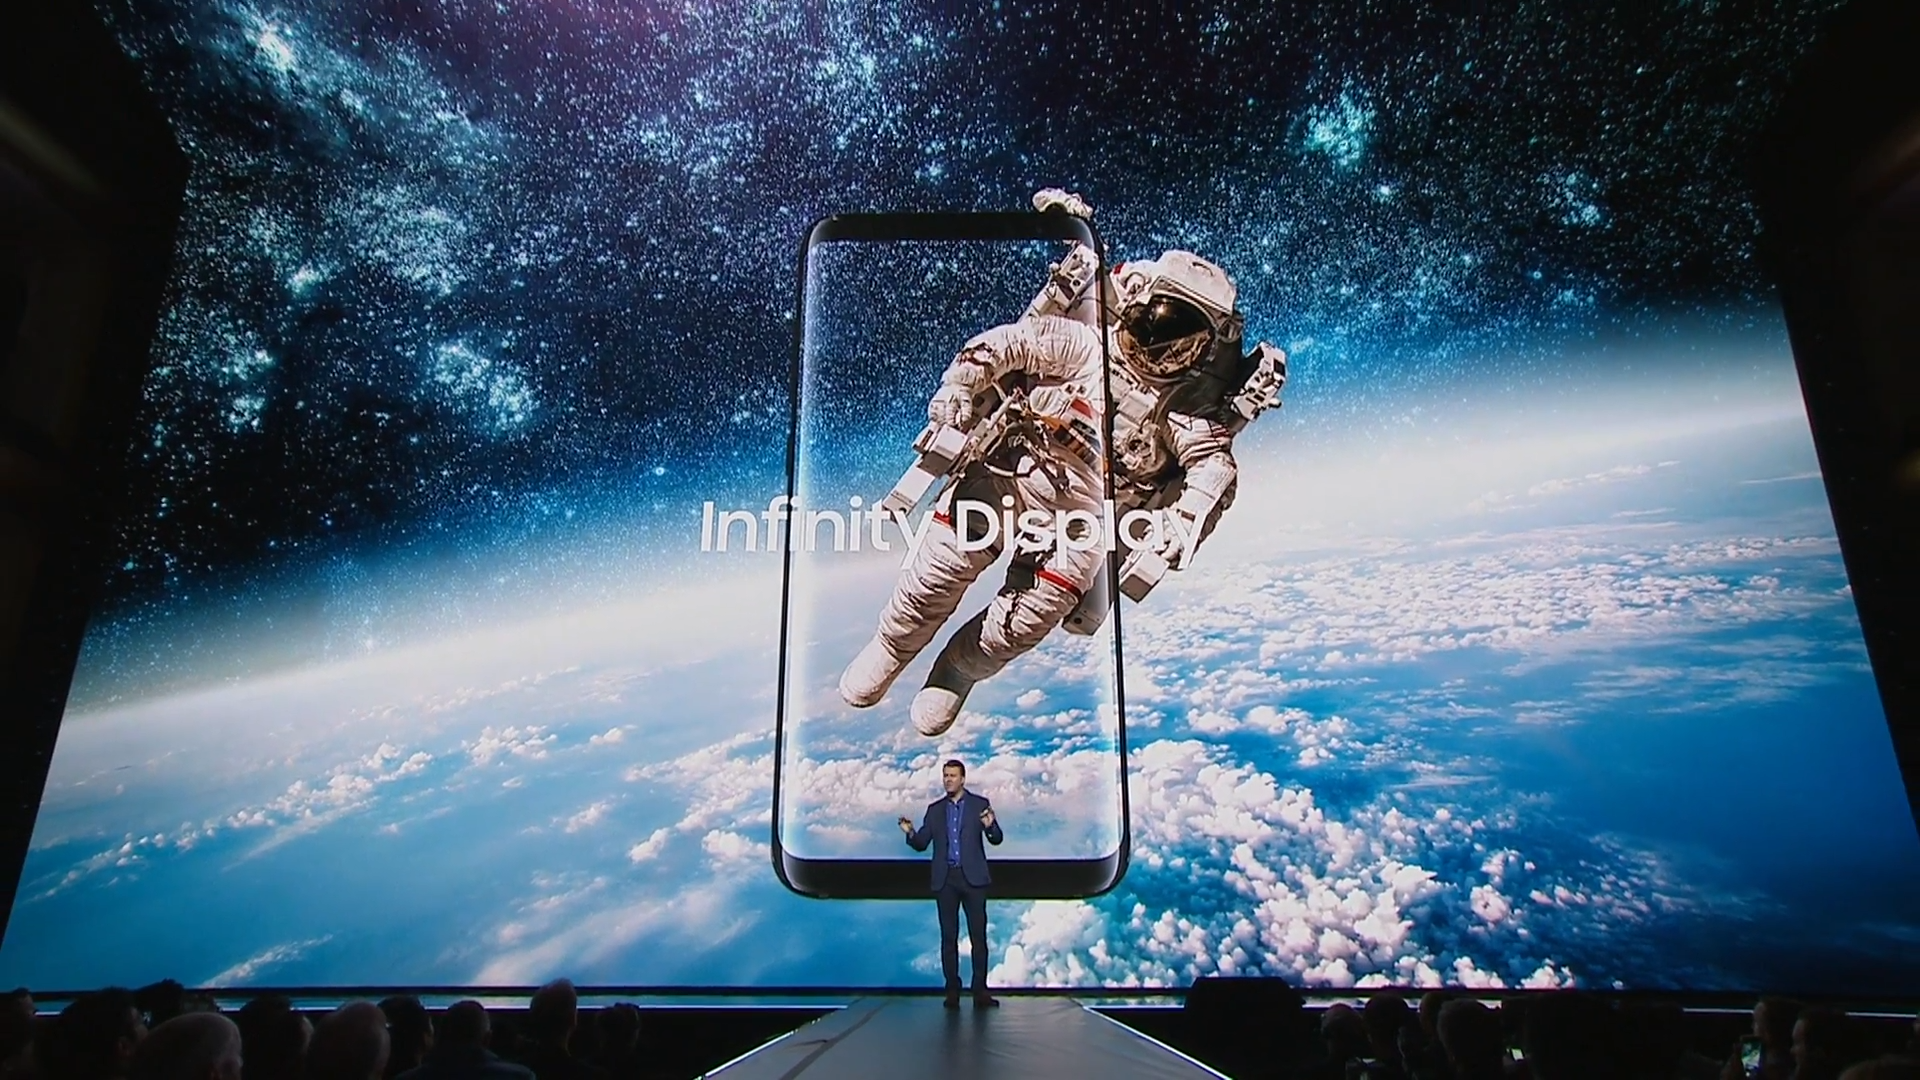 The Move To Larger Screens Is To Samsung's Advantage, - Samsung Galaxy Note 8 Infinity Display , HD Wallpaper & Backgrounds